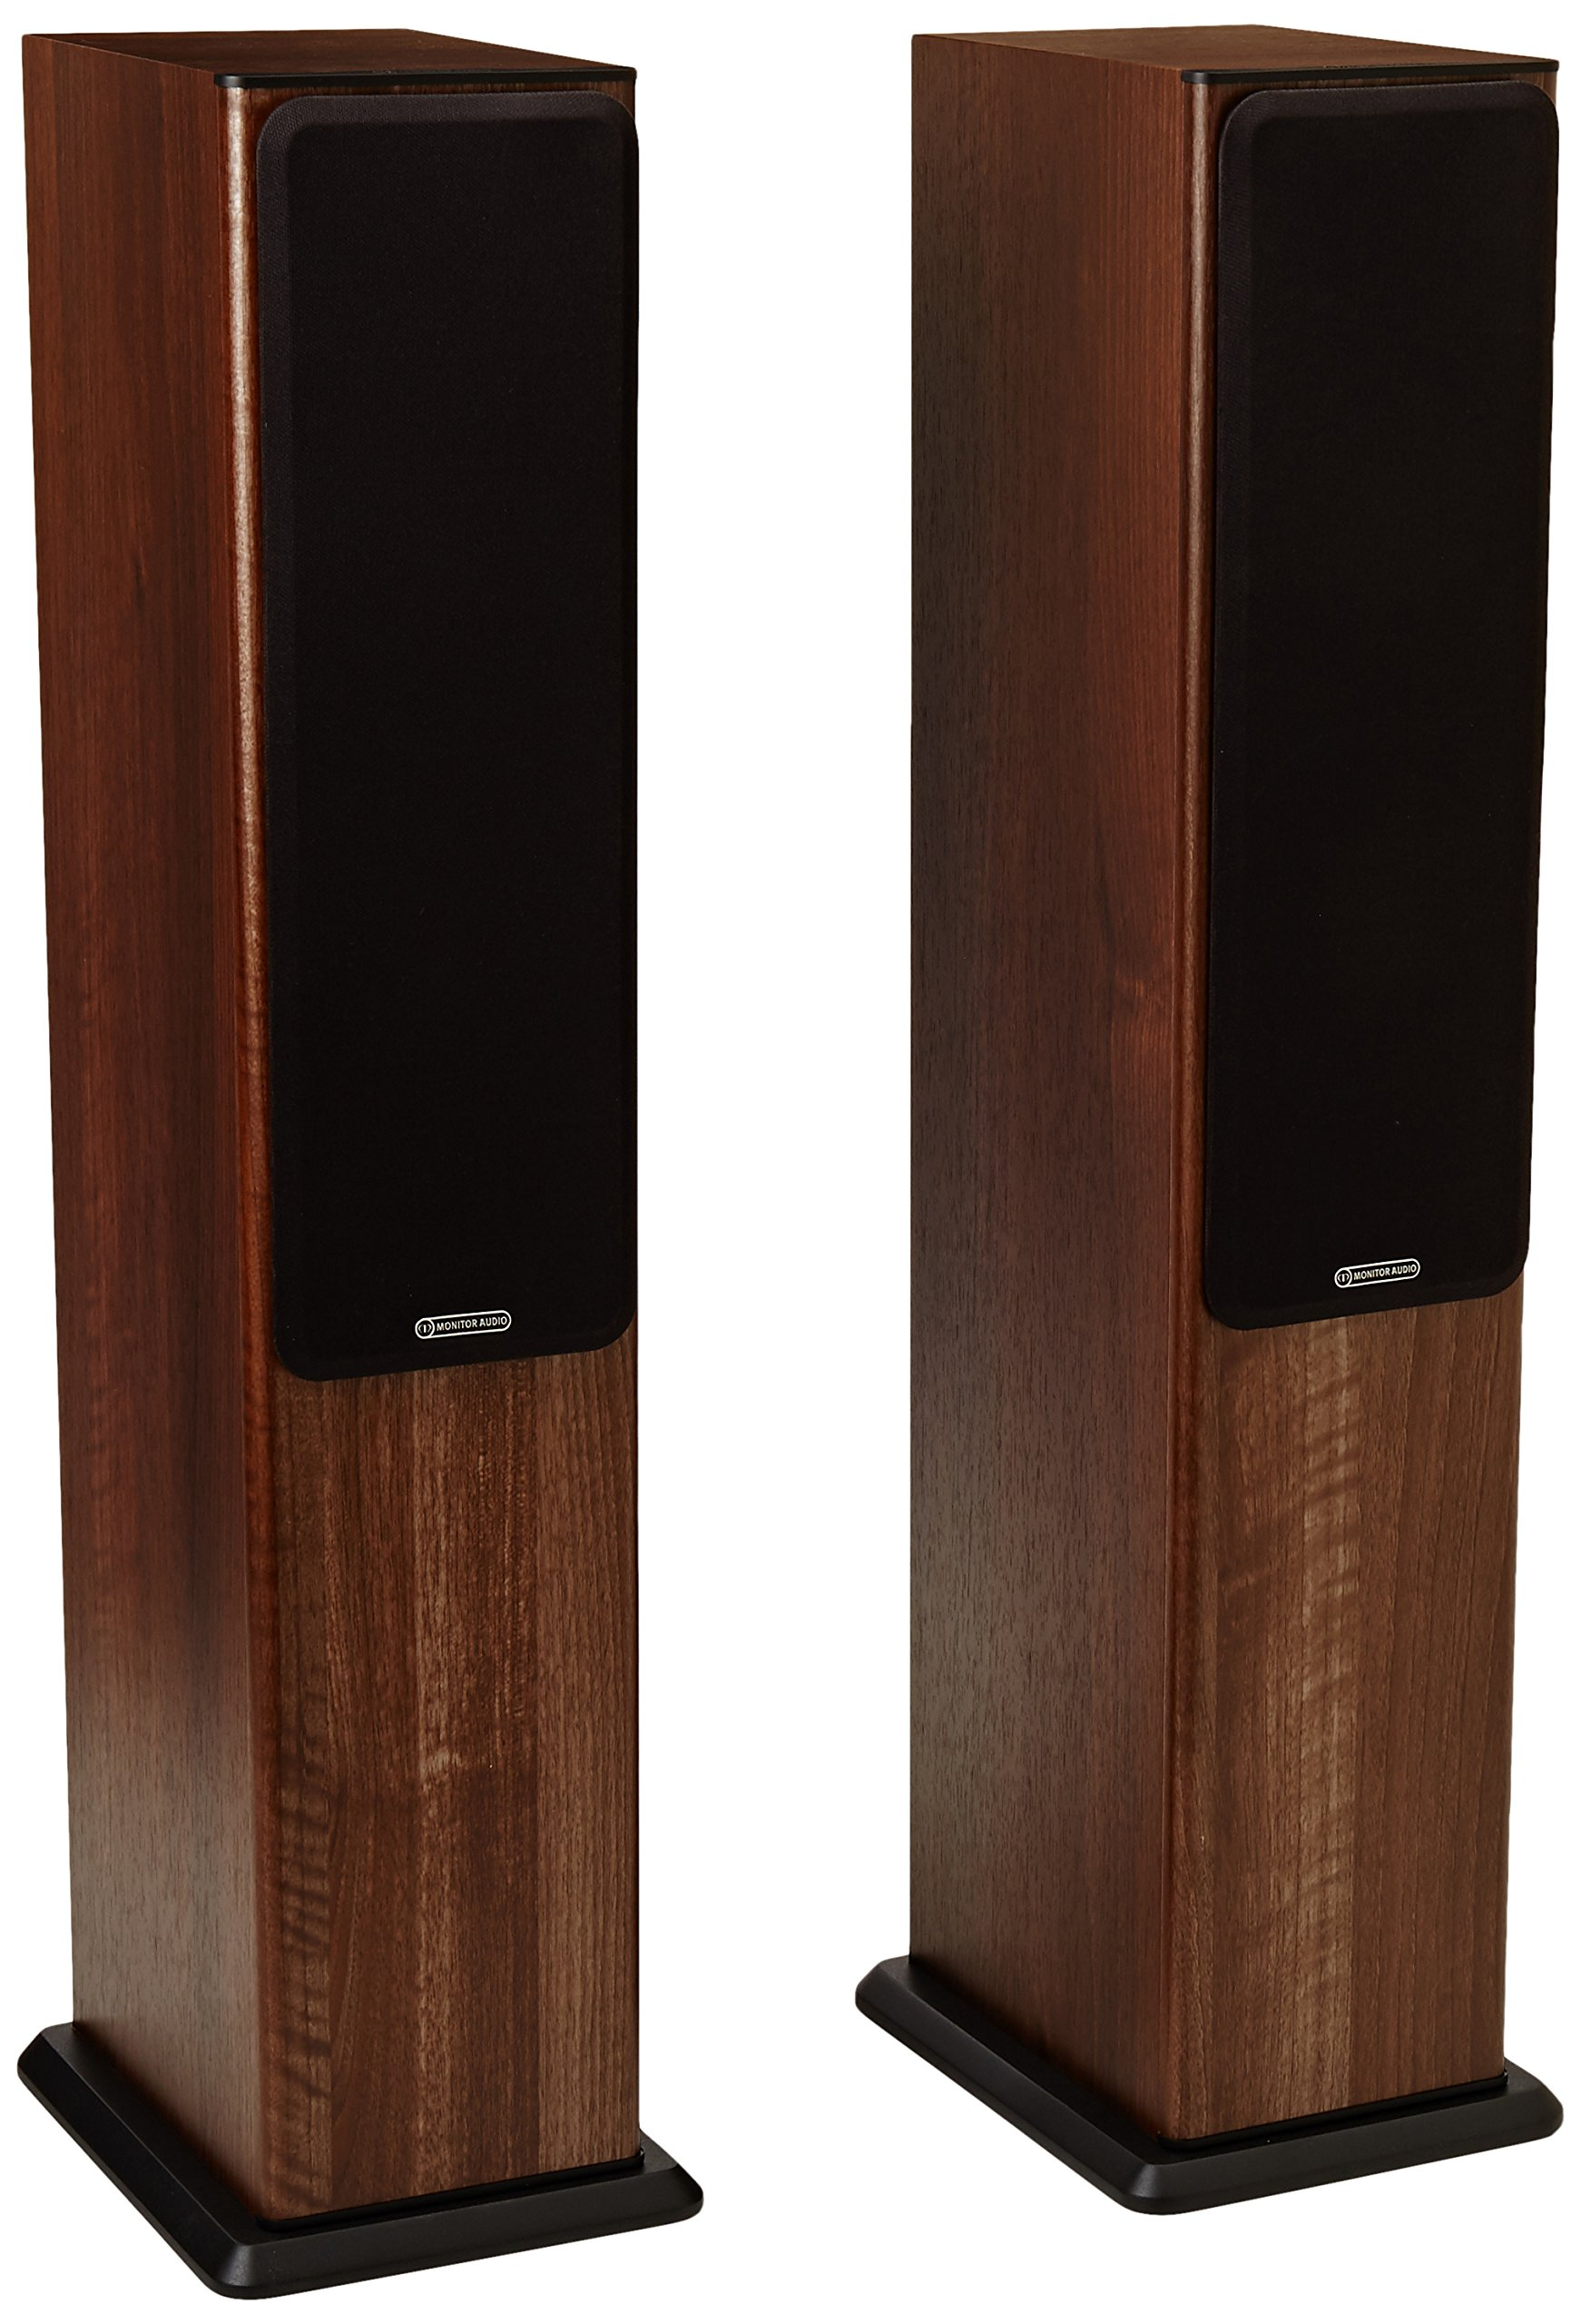 Monitor Audio Bronze Series 5 2 1/2 Way Floorstanding Speaker - Each - Walnut